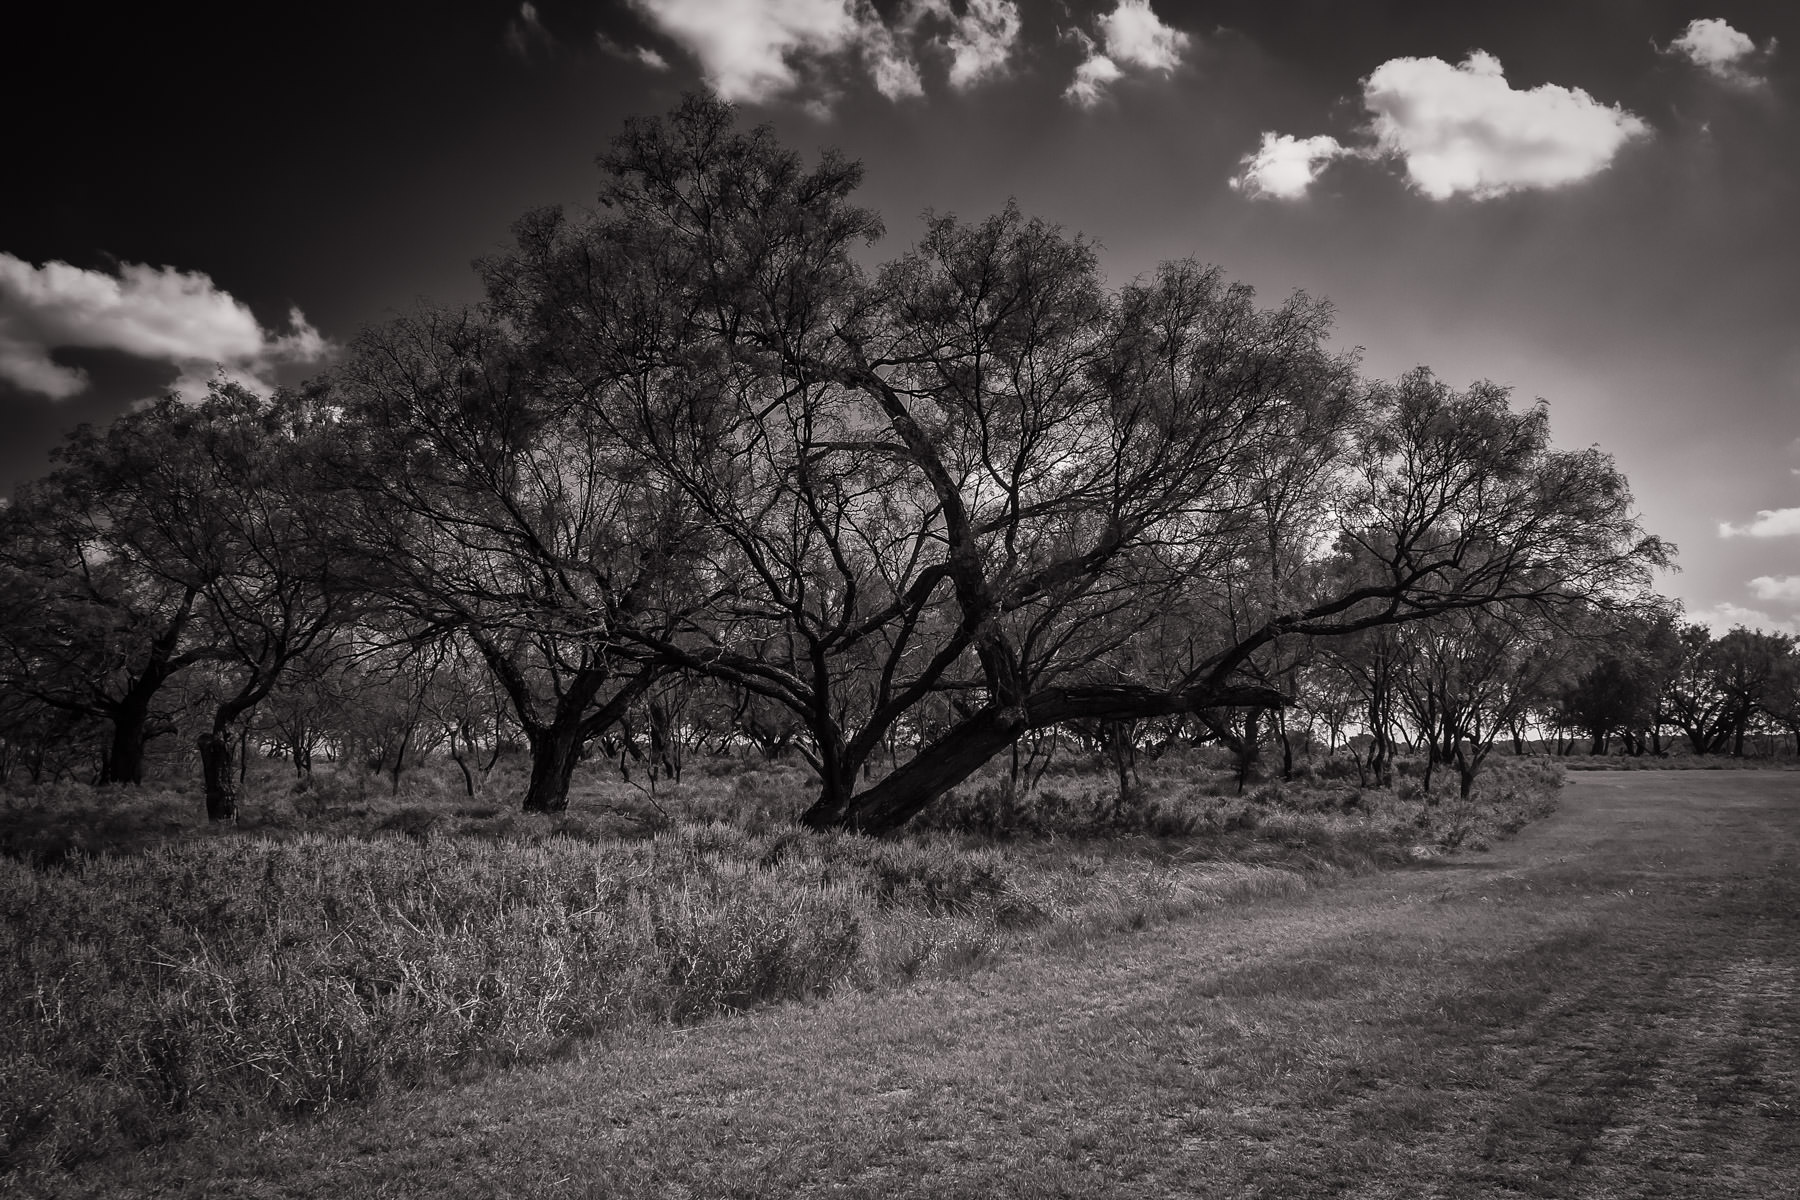 Trees in a field somewhere west of Fort Worth, Texas.